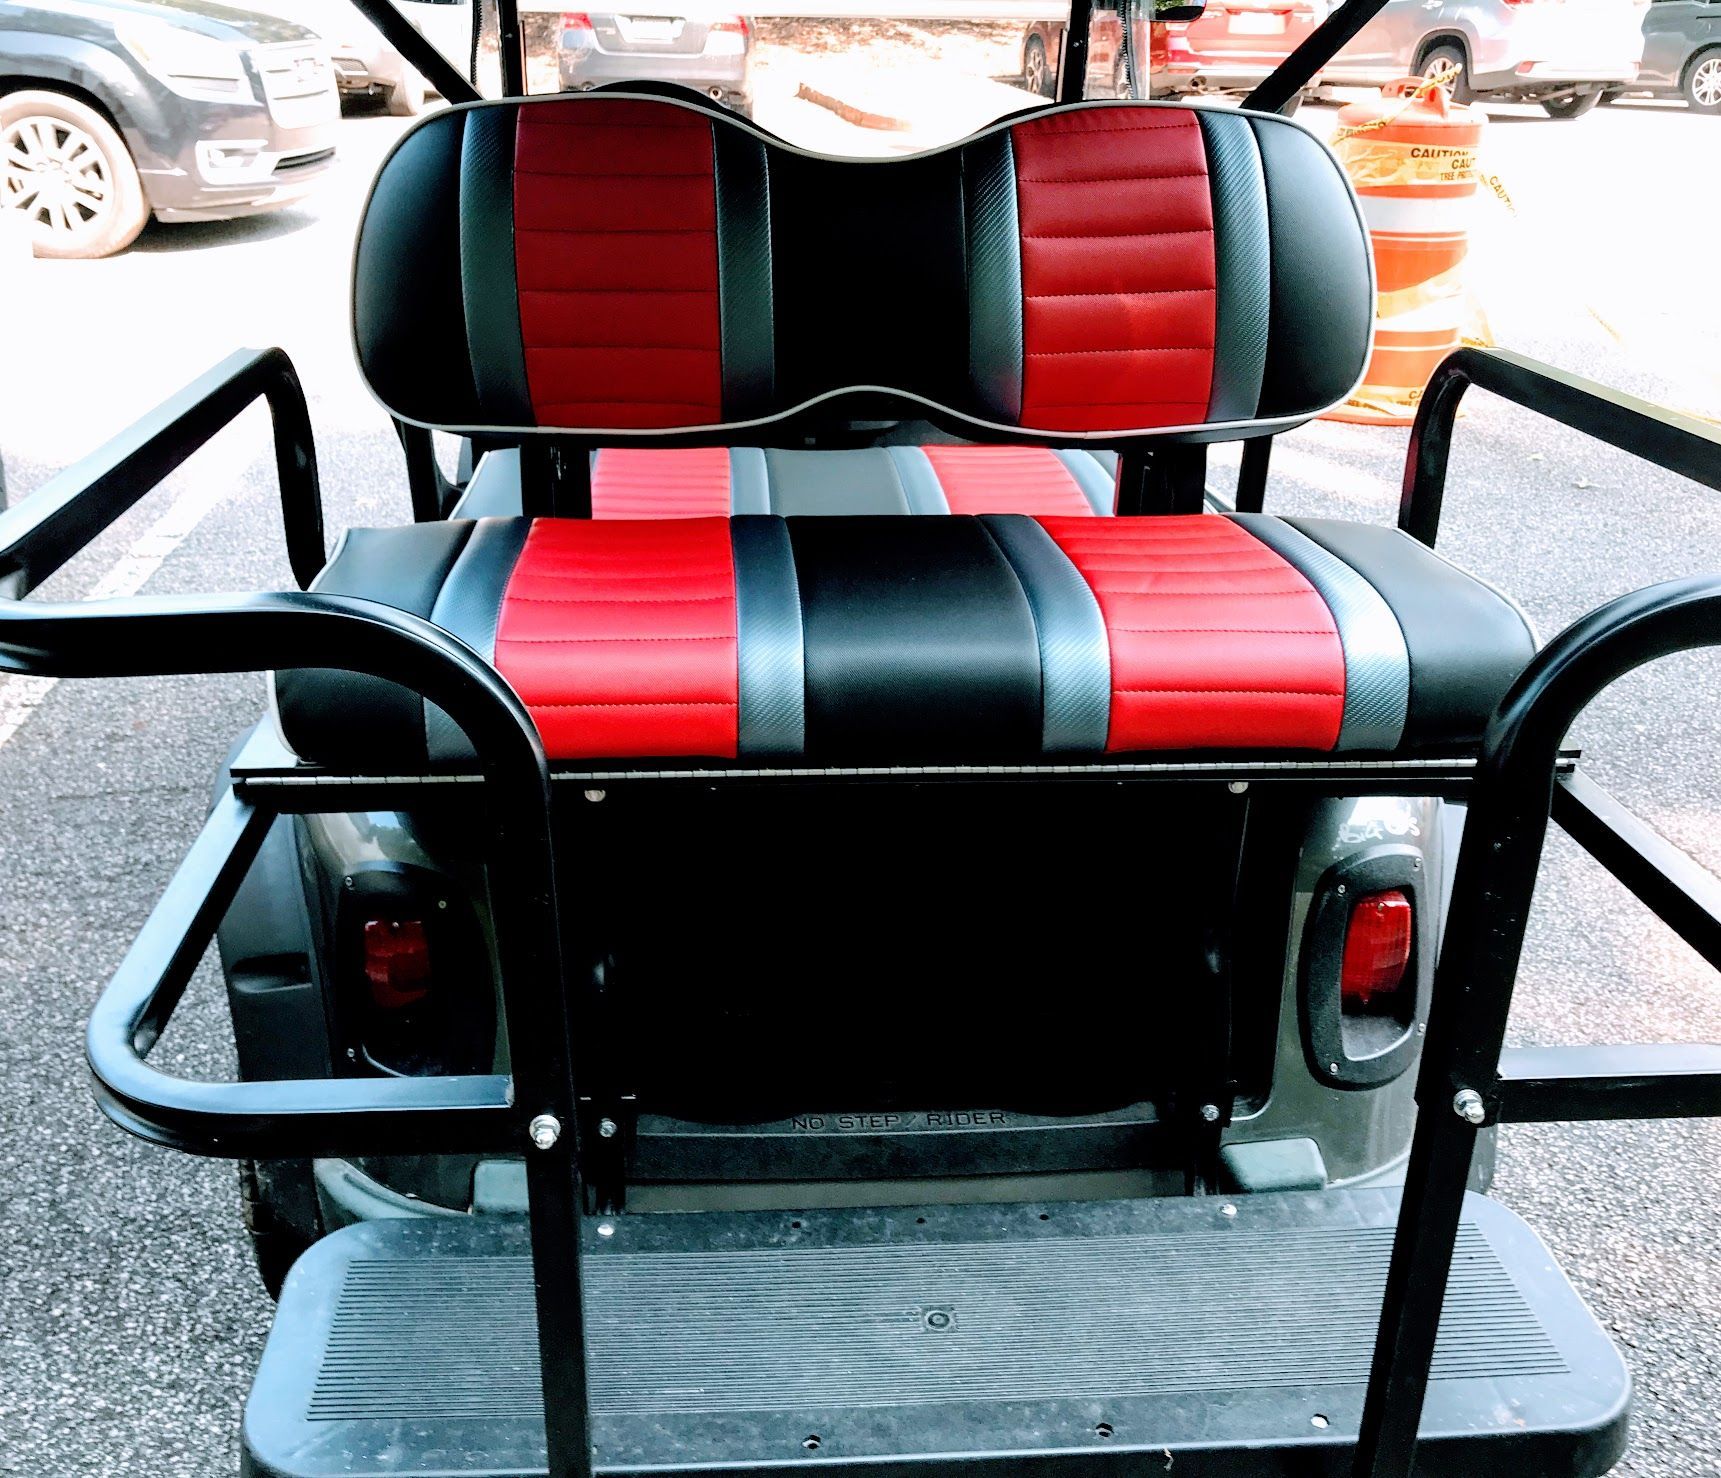 Golf Cart Rear Seat Get a Kit, Turn Your Cart into a 4